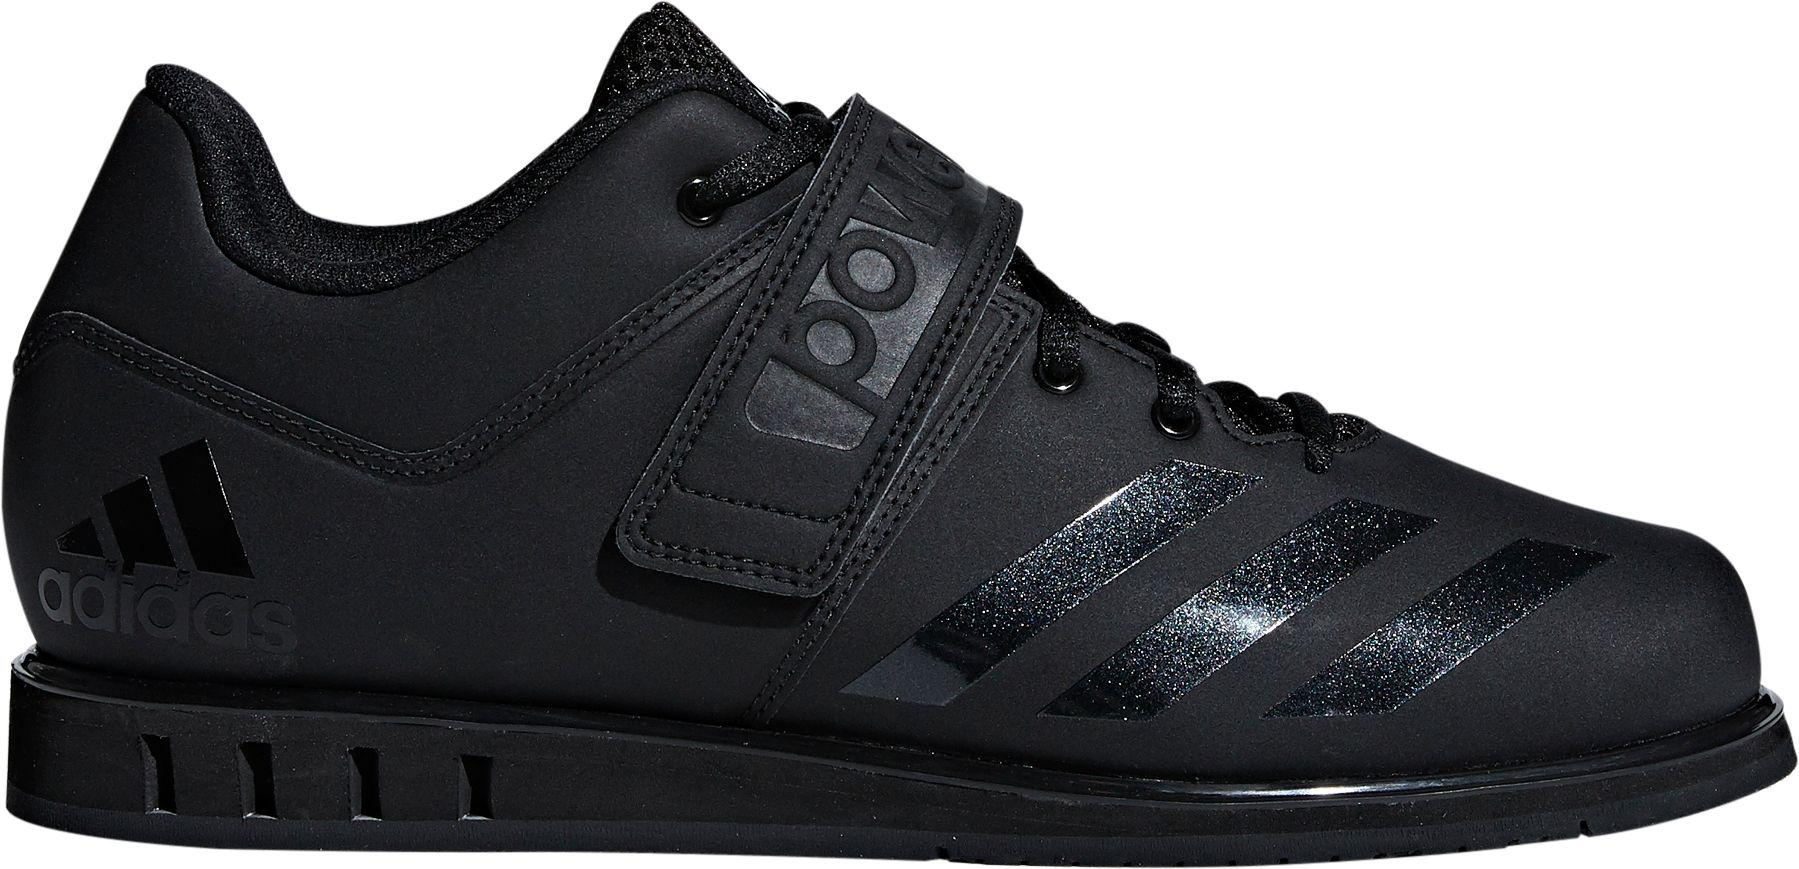 cf825d229357e adidas-BlackBlackBlack-Powerlift-31-Weightlifting-Shoes.jpeg